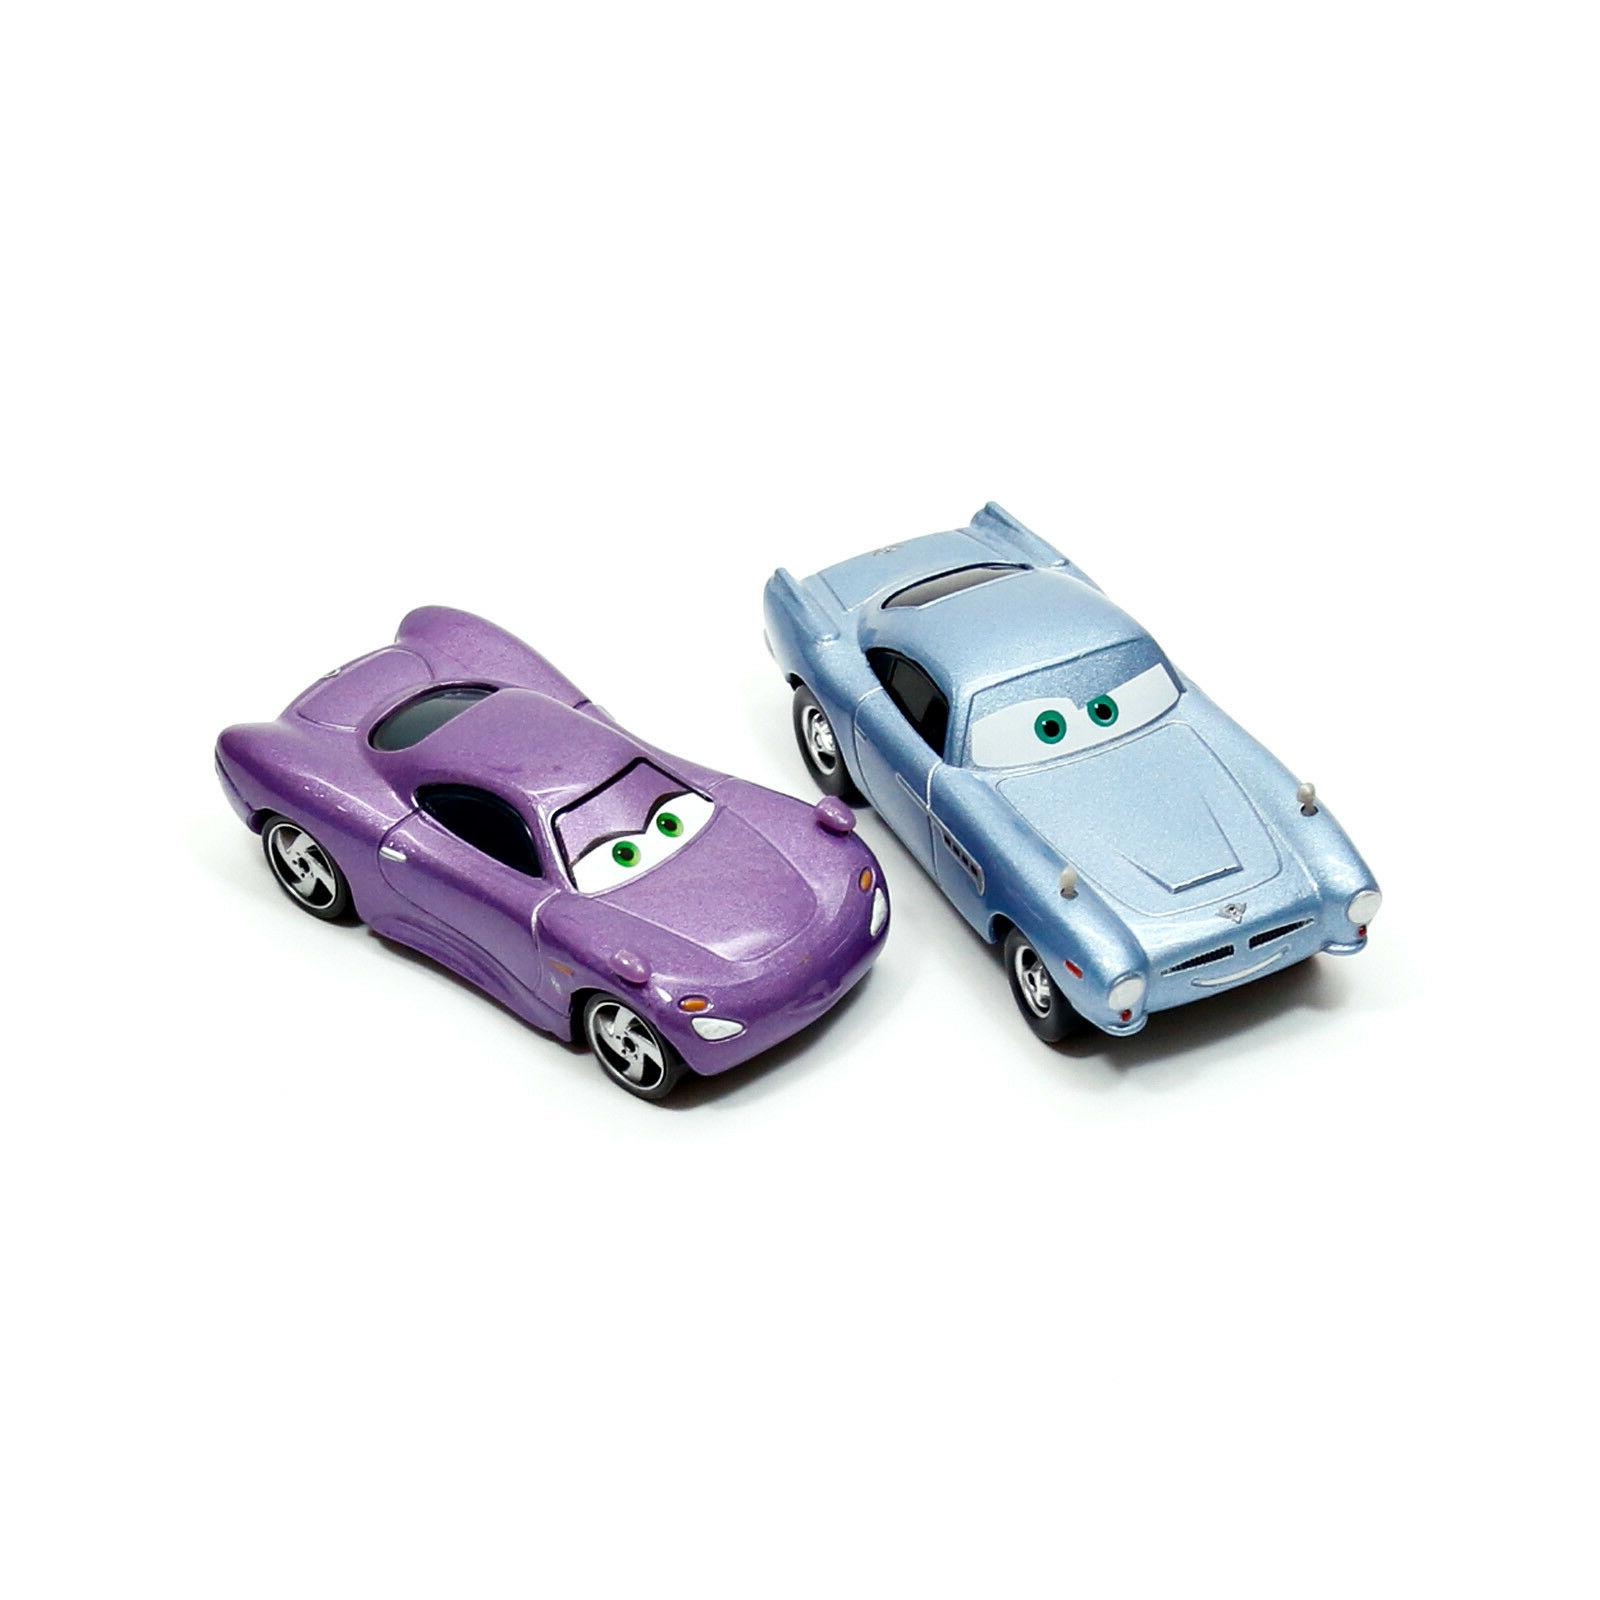 Mattel Disney Pixar Cars 2 Finn McMissile Holley Shiftwell 1